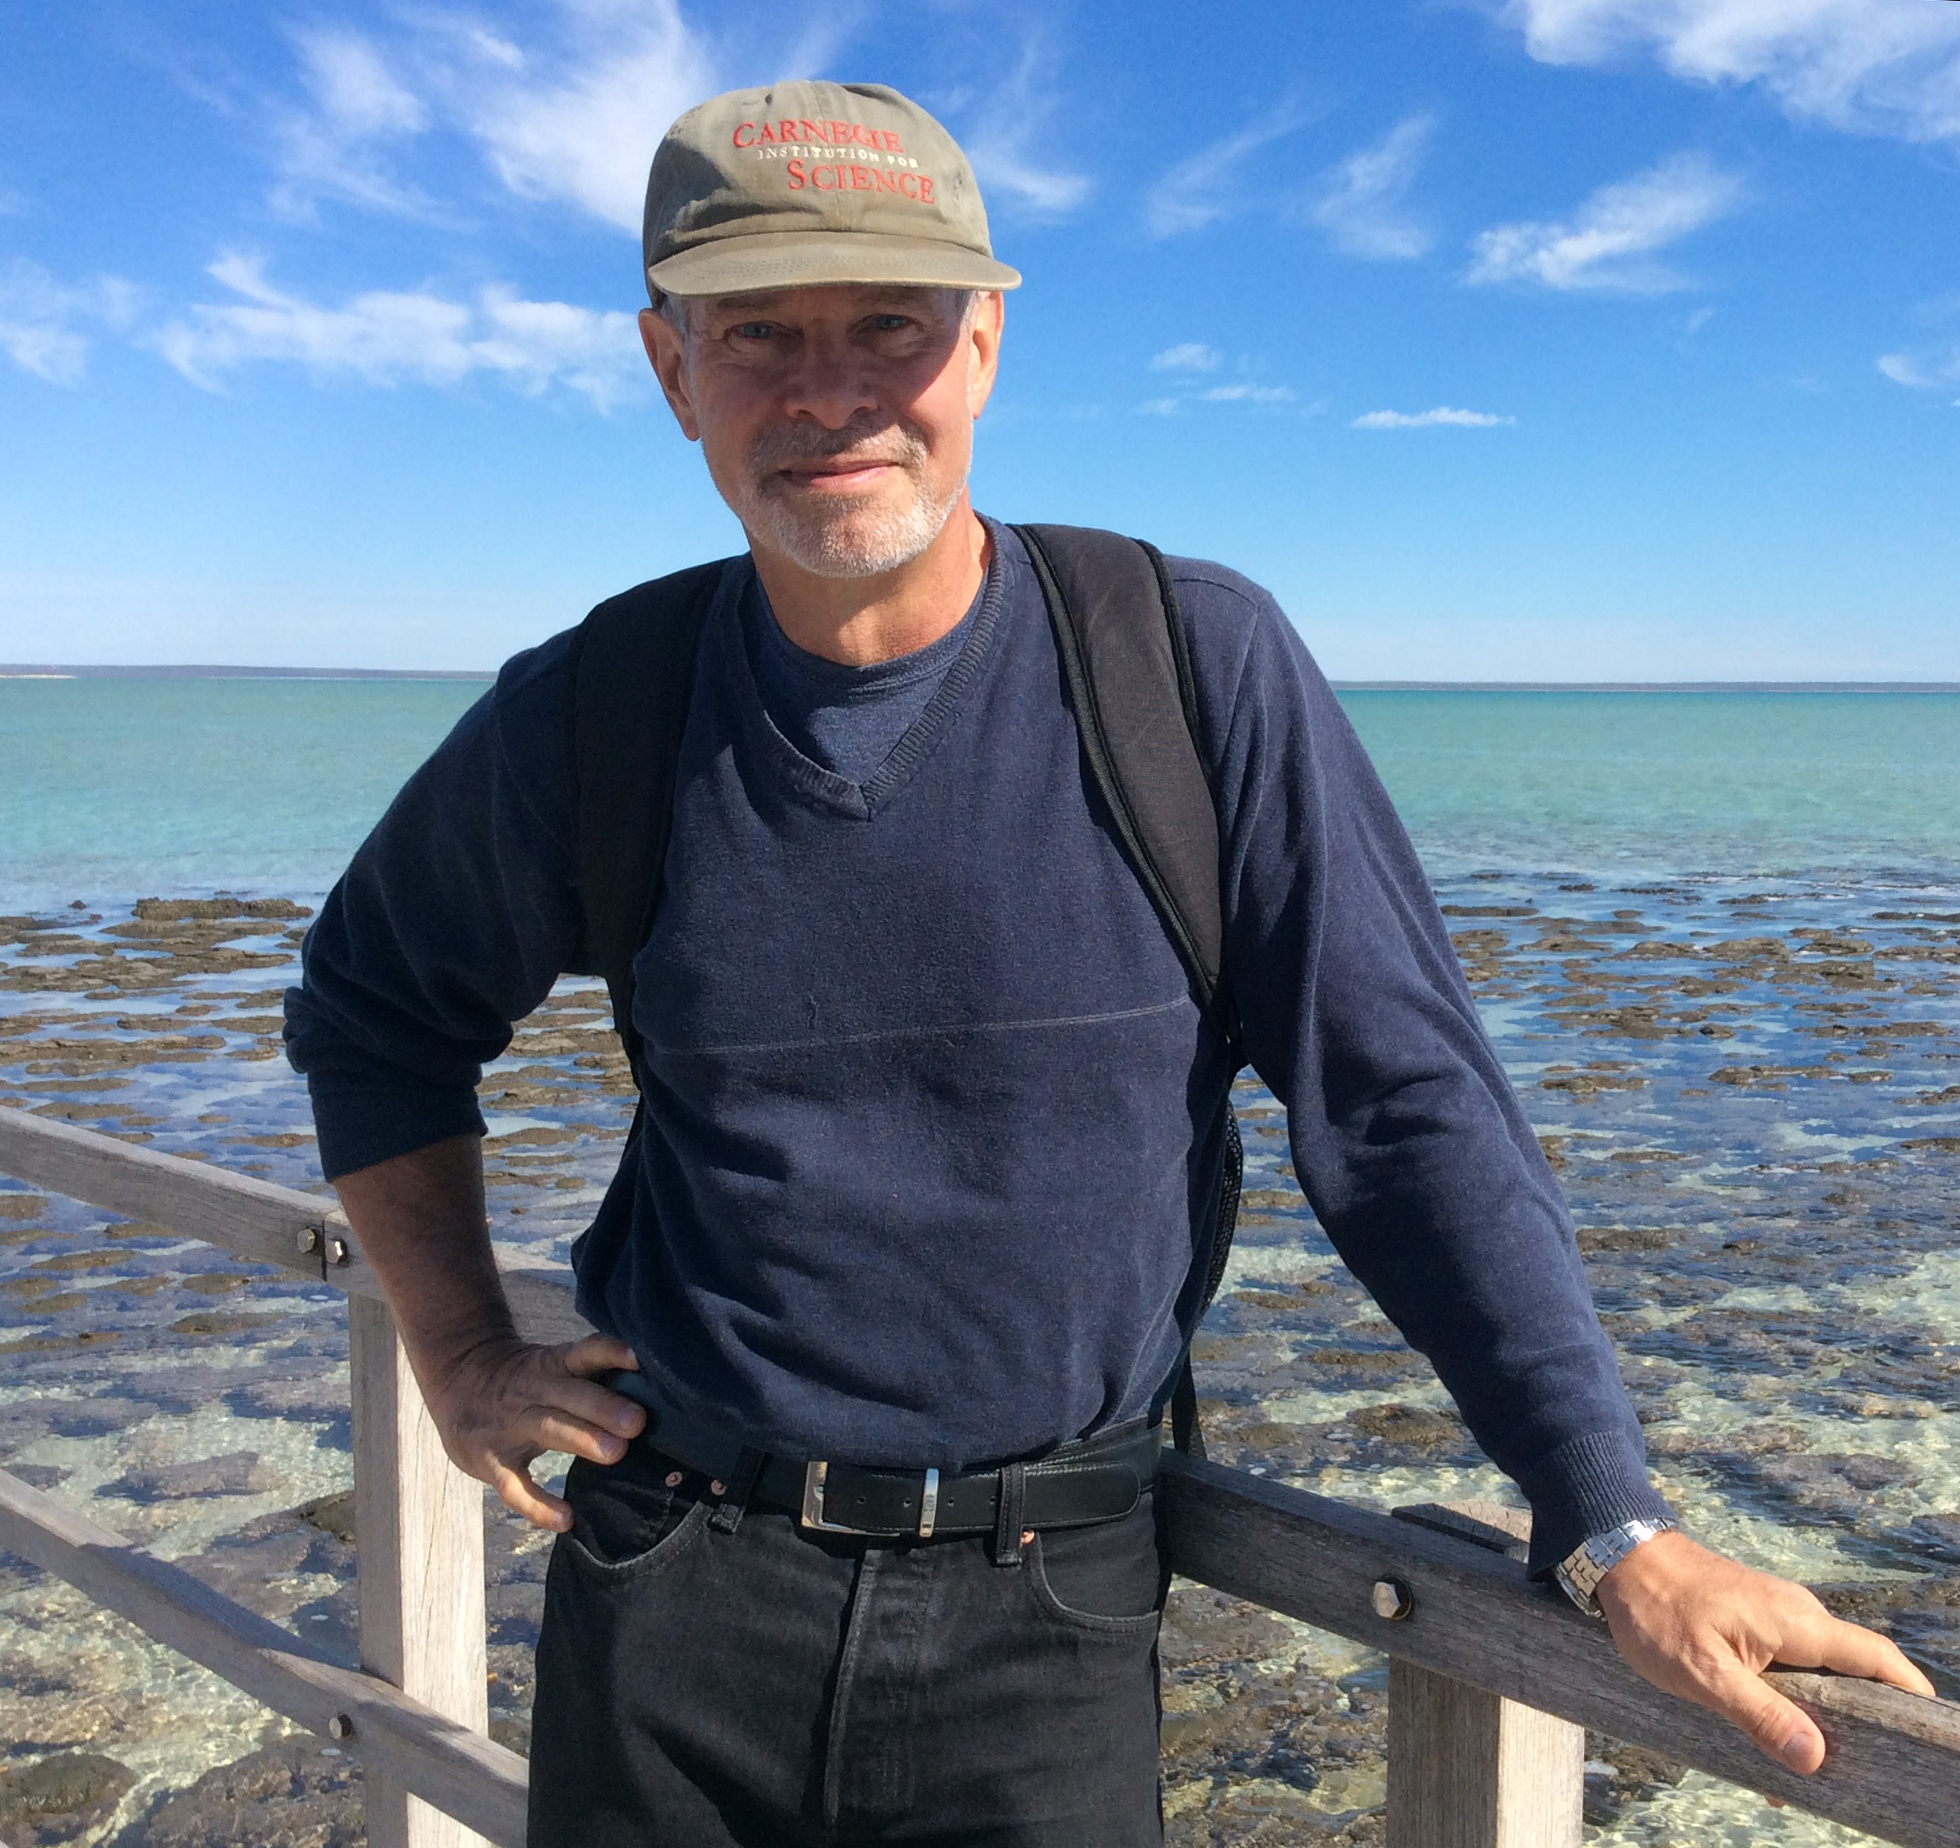 Bob Hazen on a boardwalk in front of Shark Bay, Australia, a shallow turquoise bay with dark greenish-brown stromatolite mats poking above the water surface.